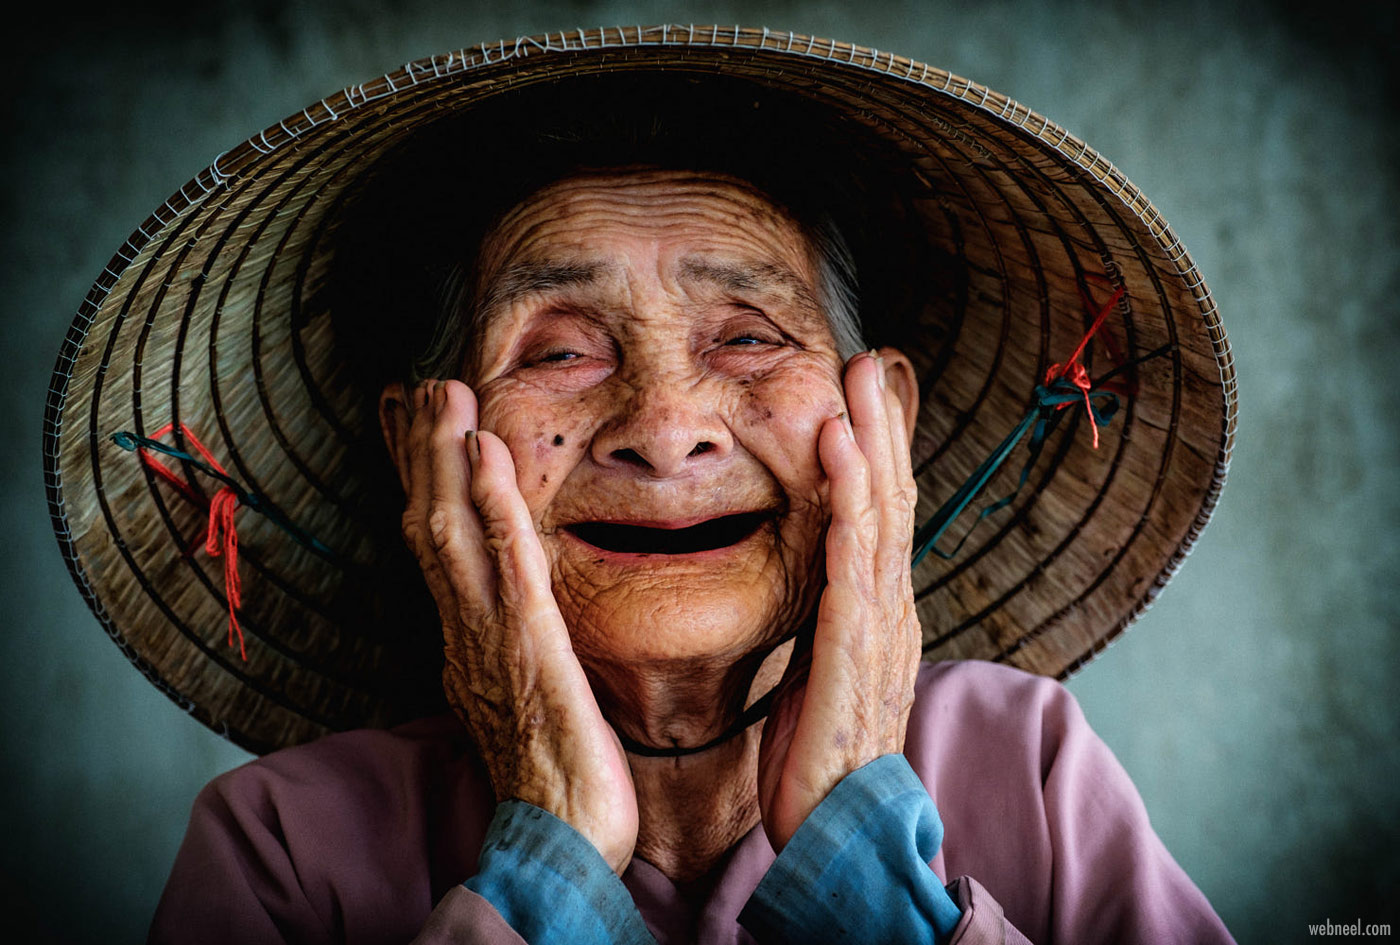 portrait photography vietnamese by peter fischer